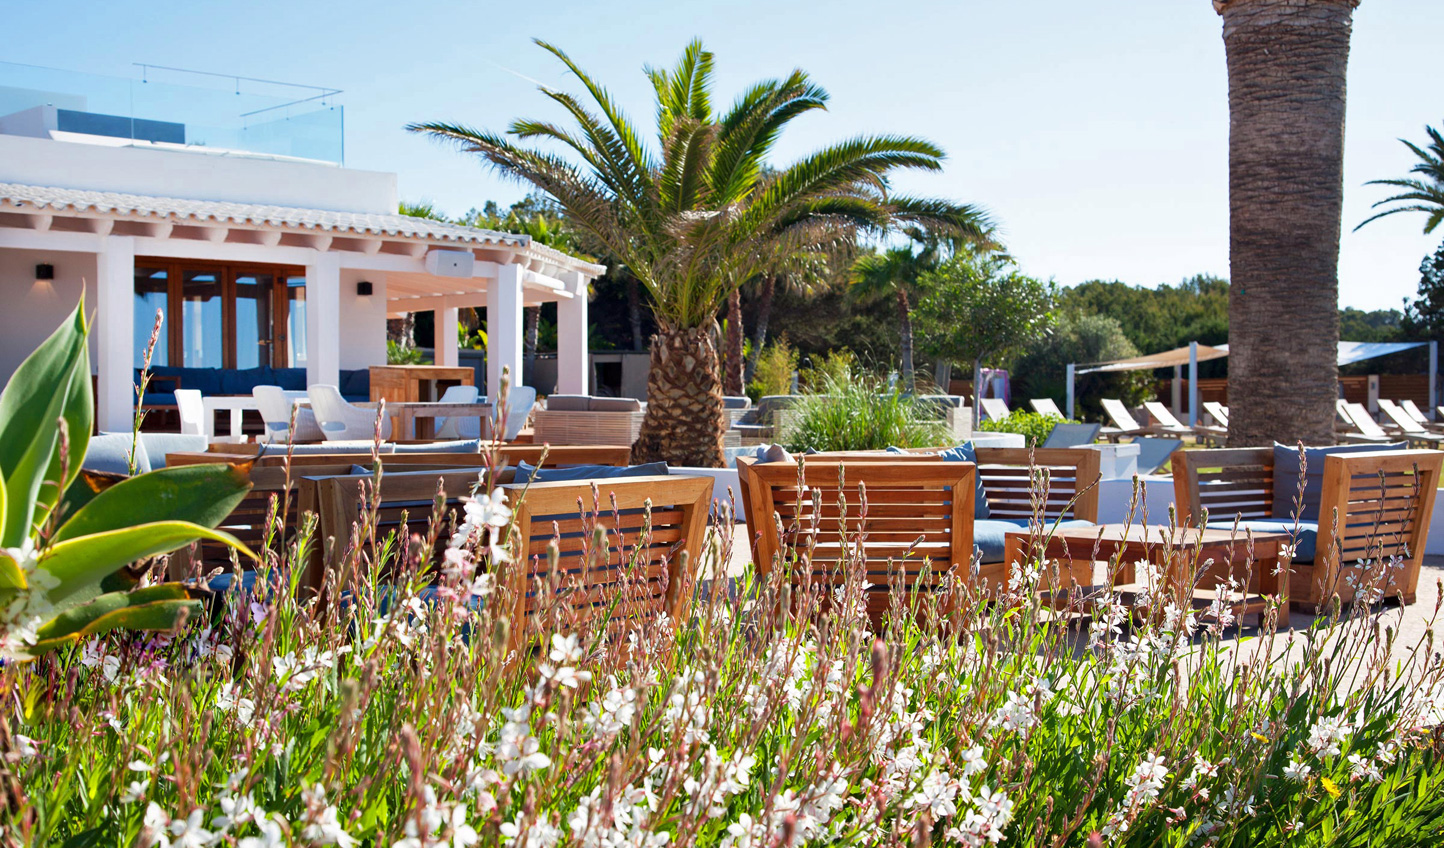 Discover why the well-heeled just can't stay away from Formentera